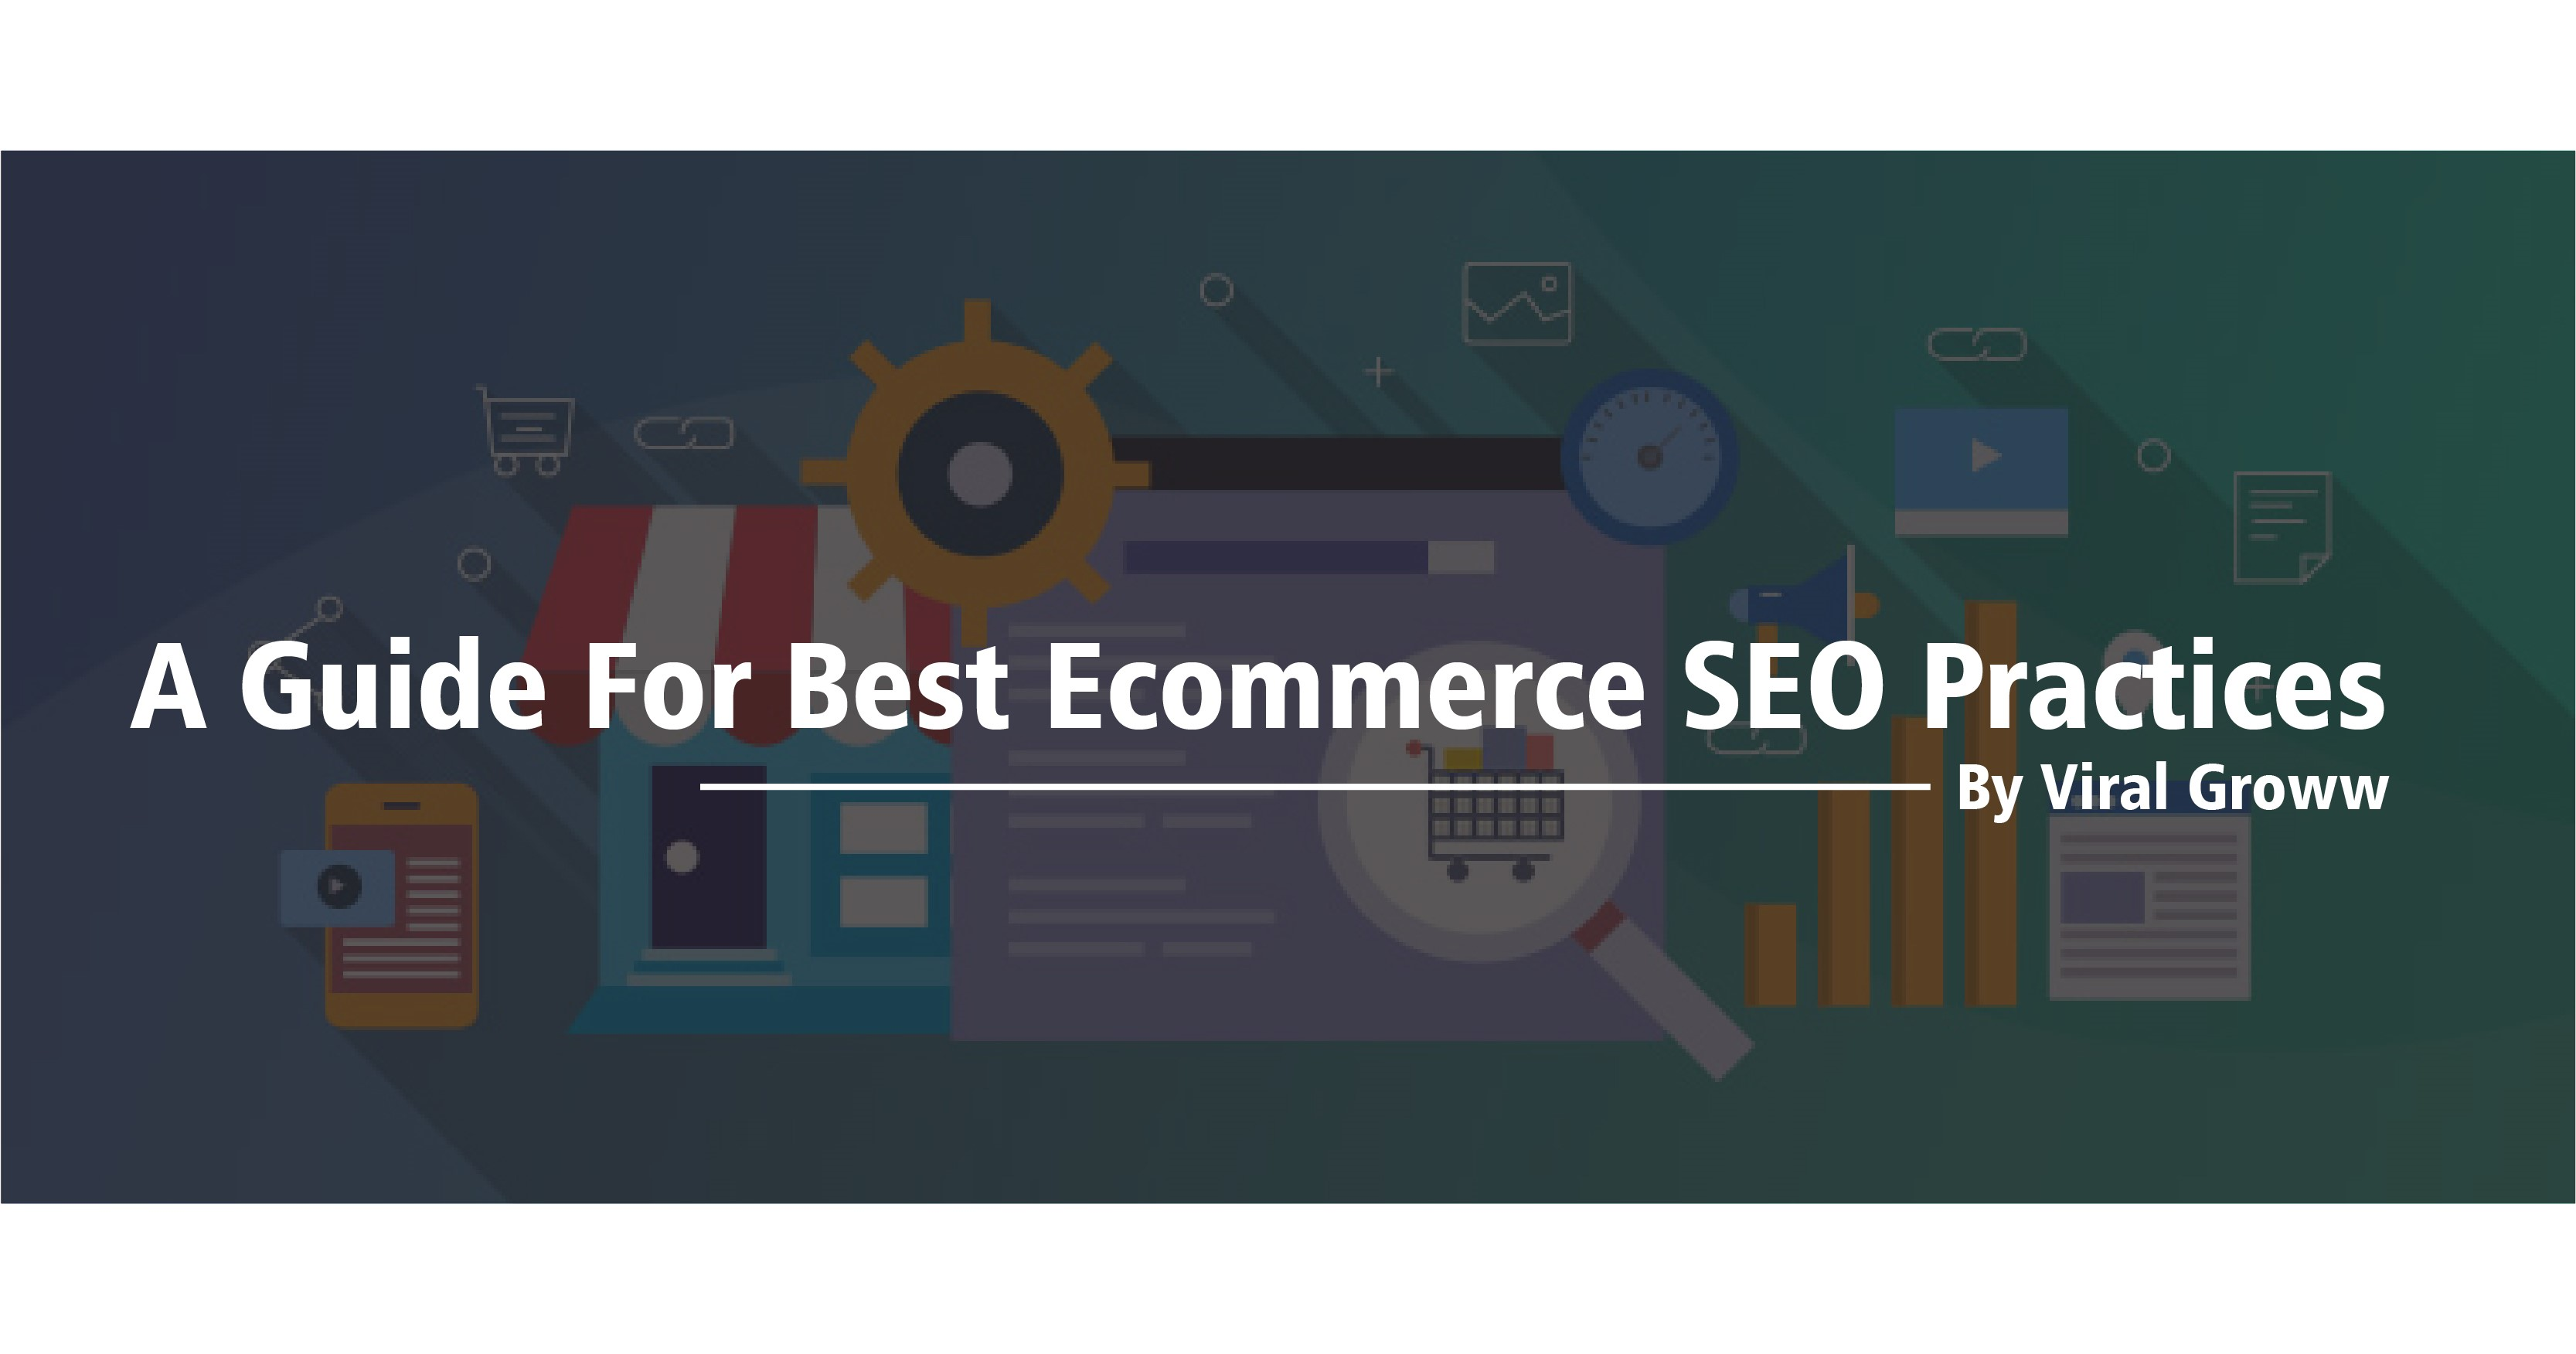 A Guide for best ecommerce SEO Practices